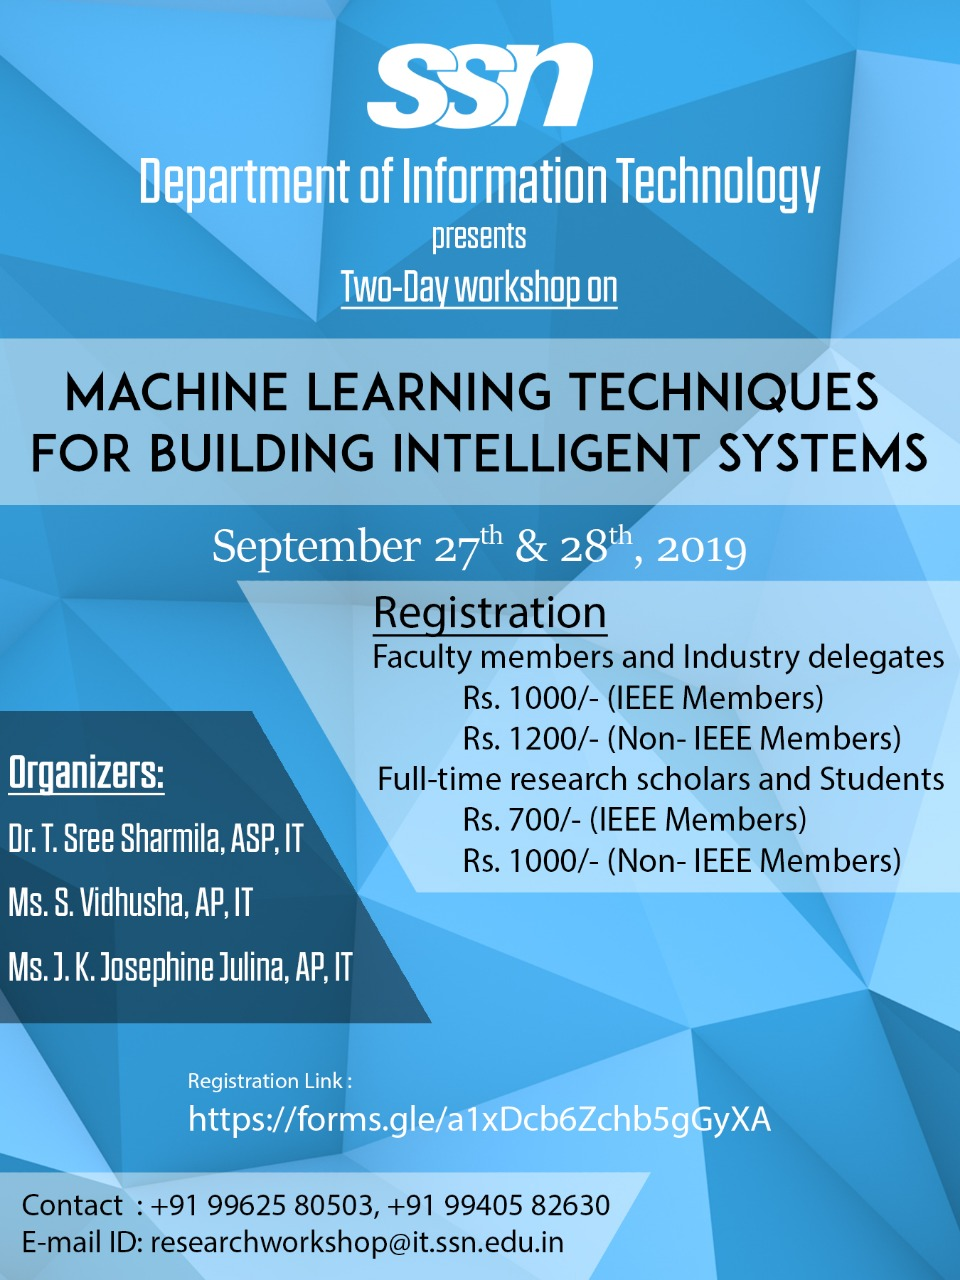 Machine Learning Techniques for Building Intelligent Systems 2019